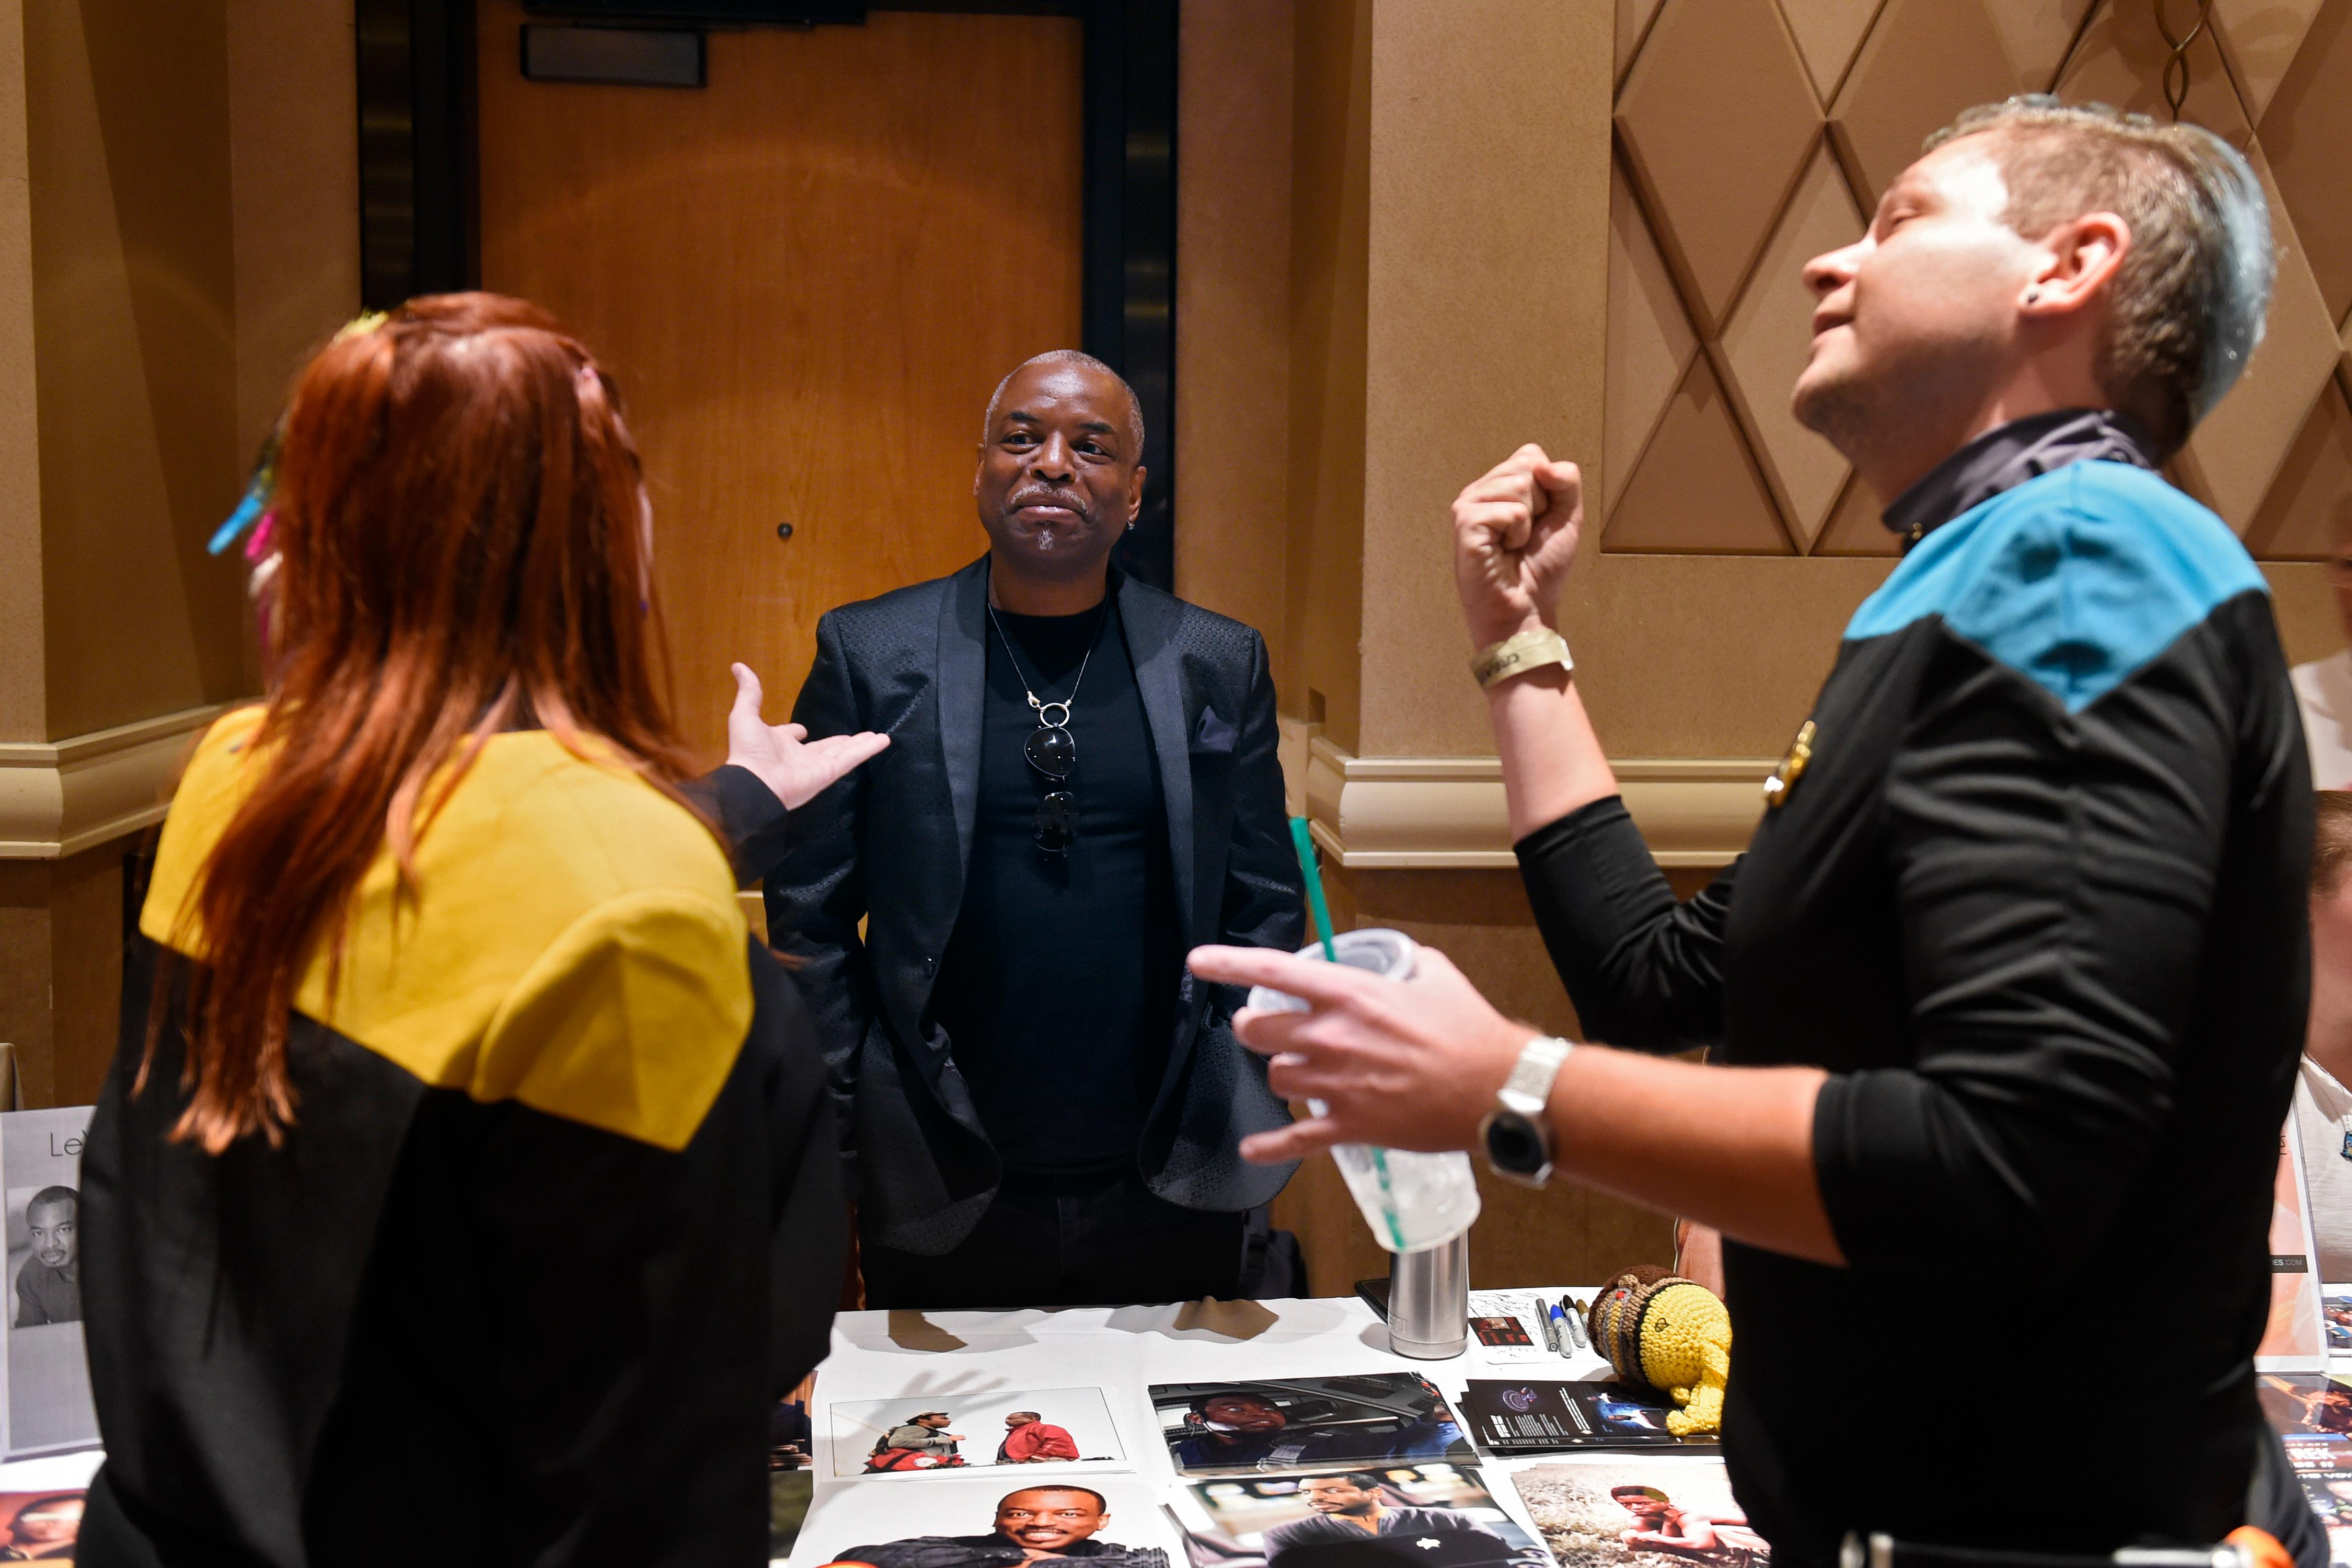 "Levar Burton, who portrayed Geordi La Forge in Star Trek: The Next Generation, is serenaded by Bonnie Gordon and Xander Jeanneret with a rendetion of the theme to Burton's show ""Reading Rainbow"" with new lyrics referring to his Star Trek Role during the 16th annual Las Vegas Star Trek Convention Saturday, August 5, 2017, at the Rio.  CREDIT: Sam Morris/Las Vegas News Bureau"